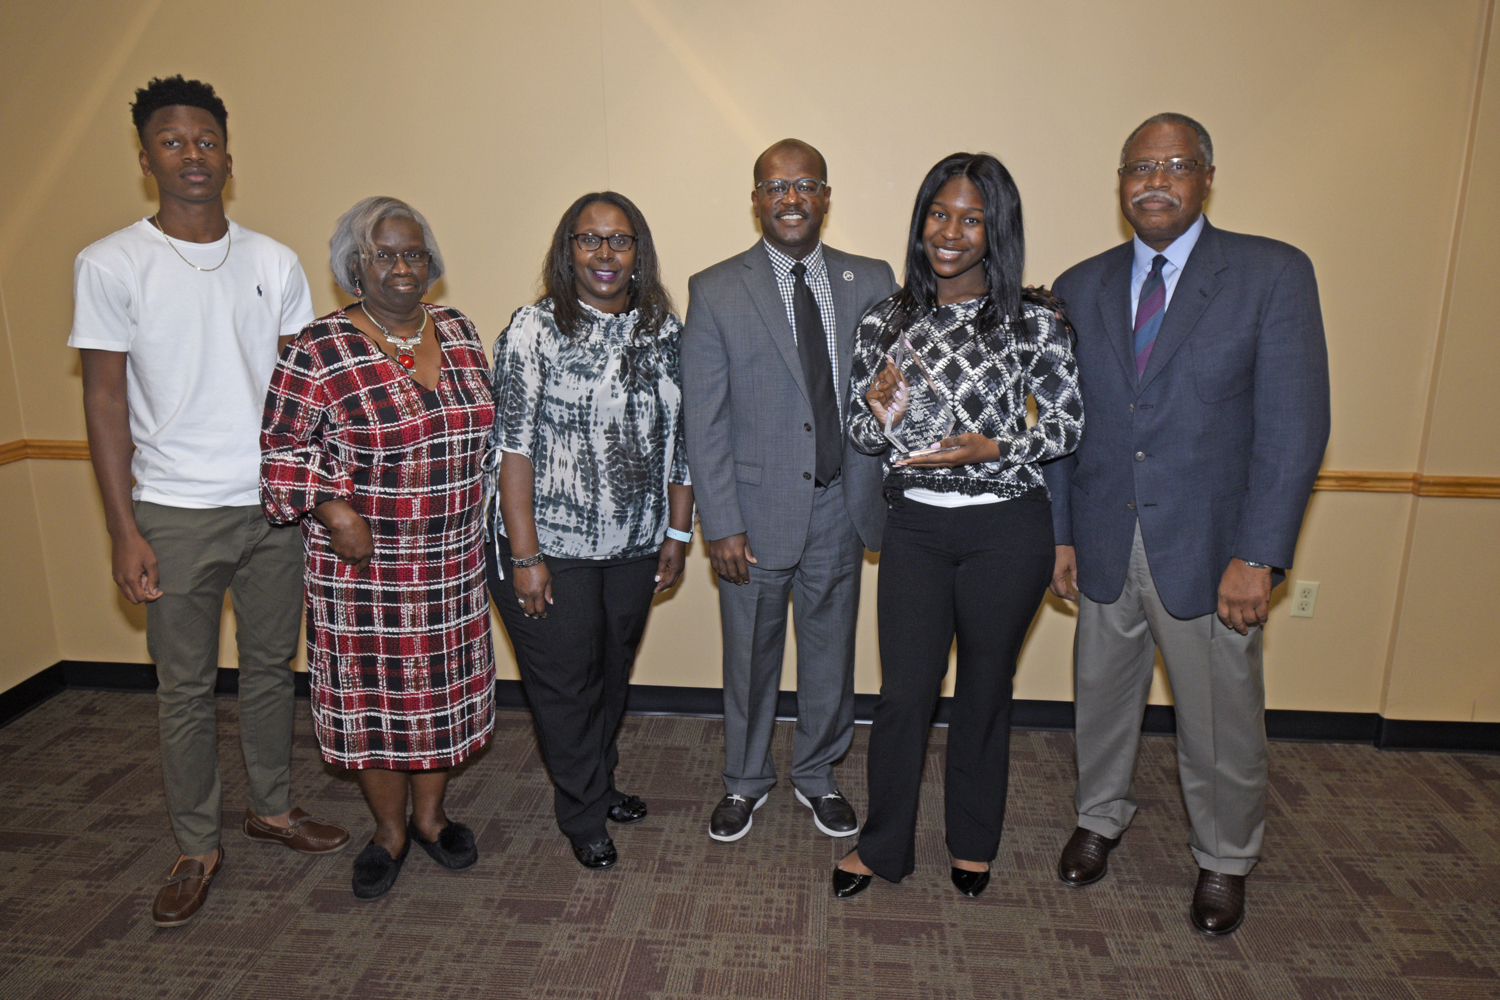 Phillip Petway (fourth from left) and Dr. Mark Latimore Jr. (far right), FVSU Extension administrator, presents Terrica Bond (second from right) and her family with the 4-H Family of the Year Award.